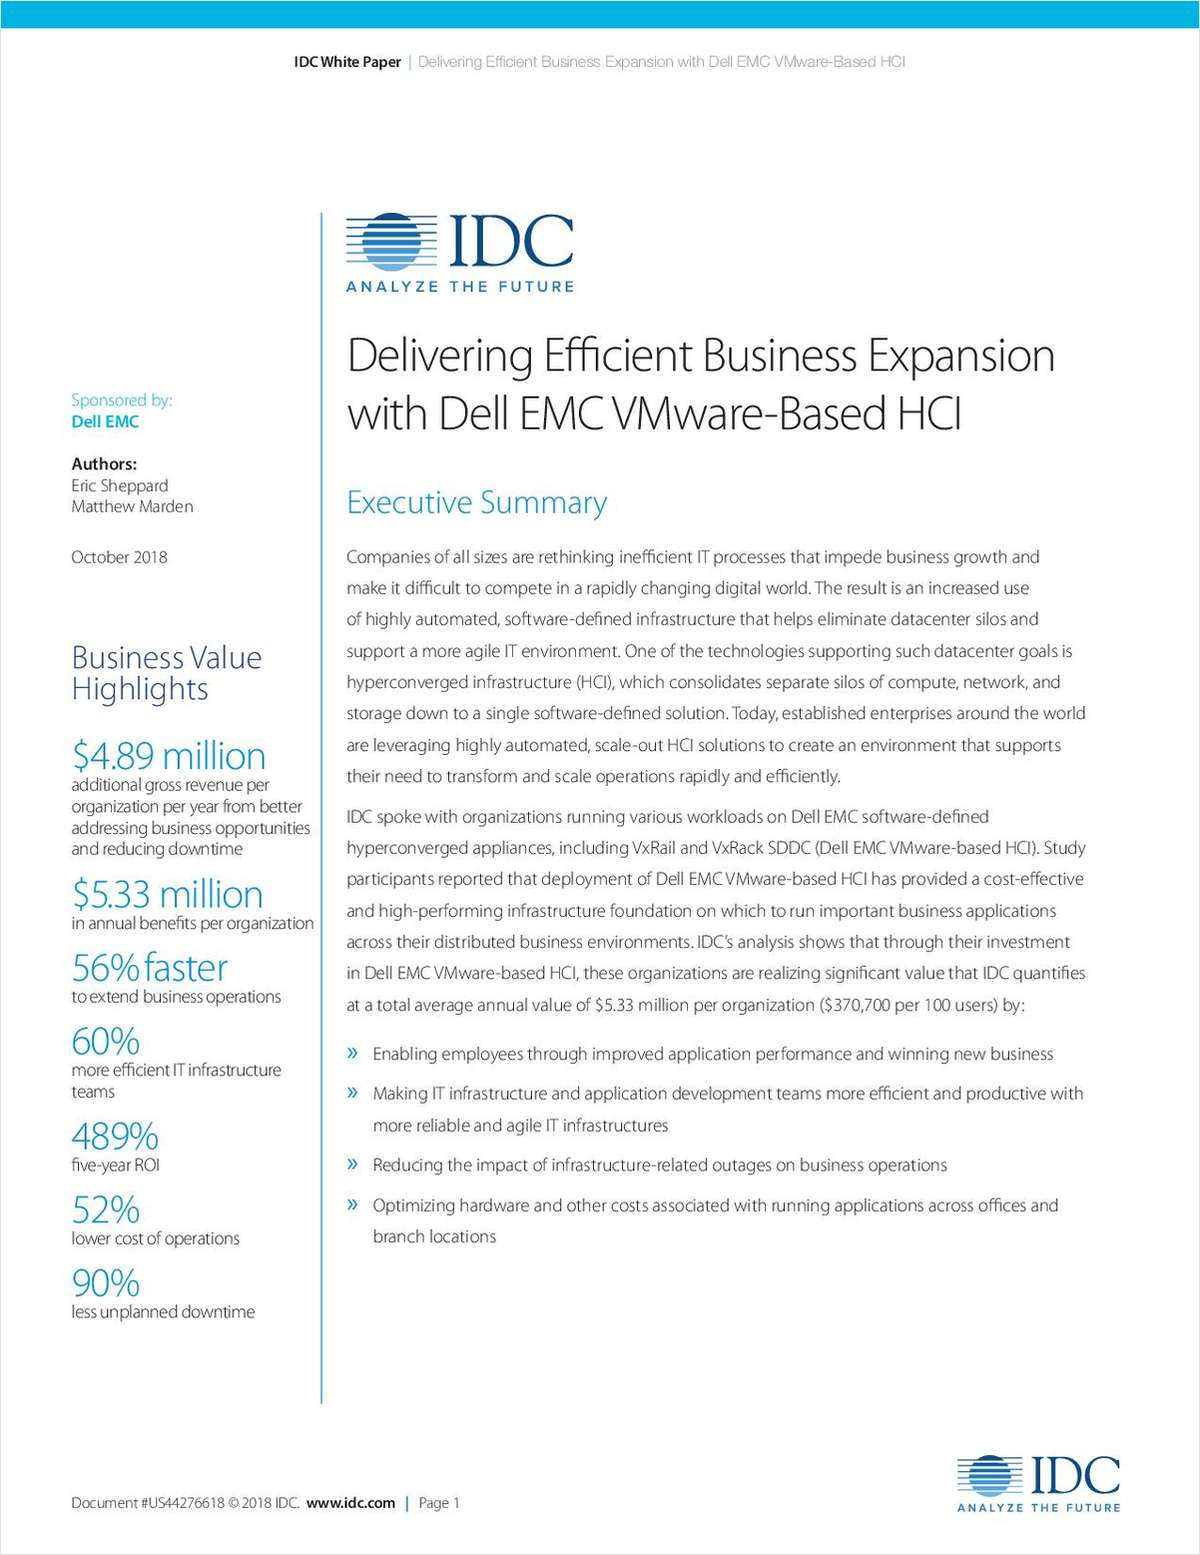 Delivering Efficient Business Expansion with Dell EMC VMware-Based HCI